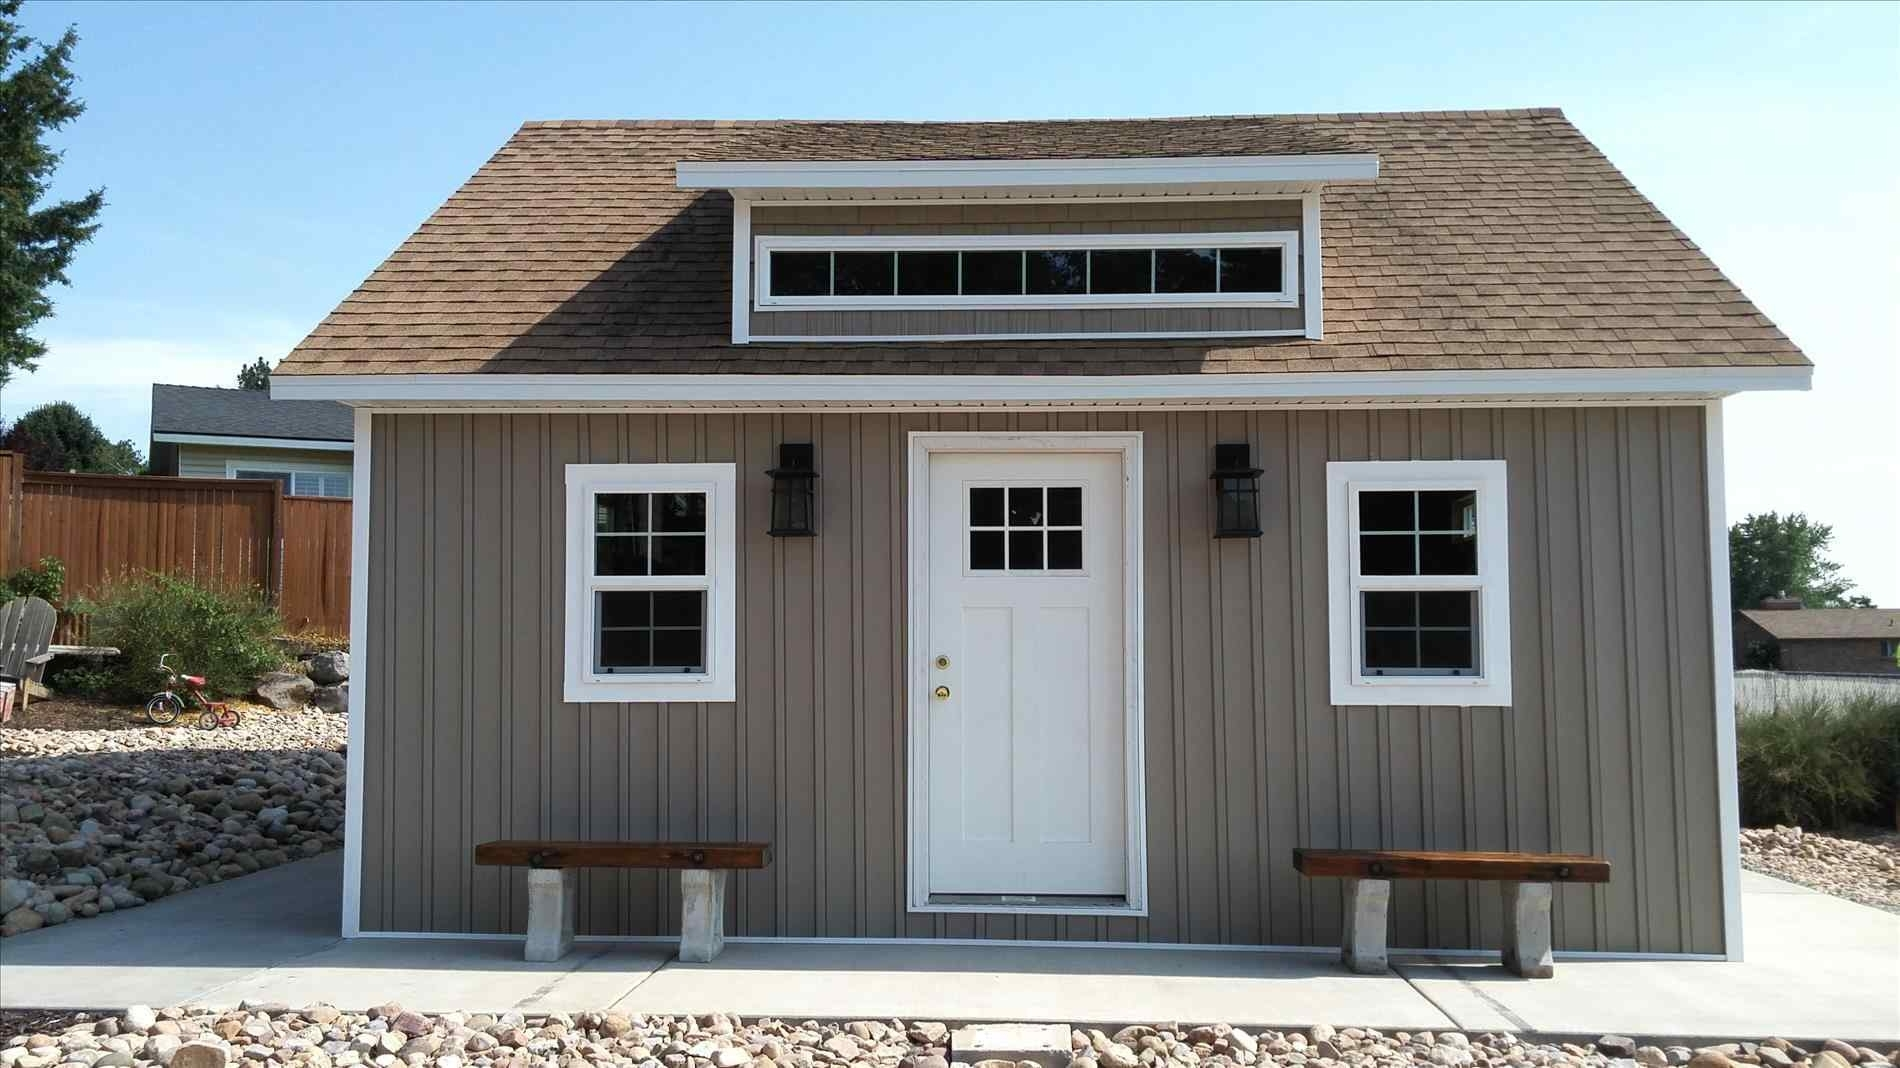 Wall Covering Board And Batten Vinyl Siding Madison Art